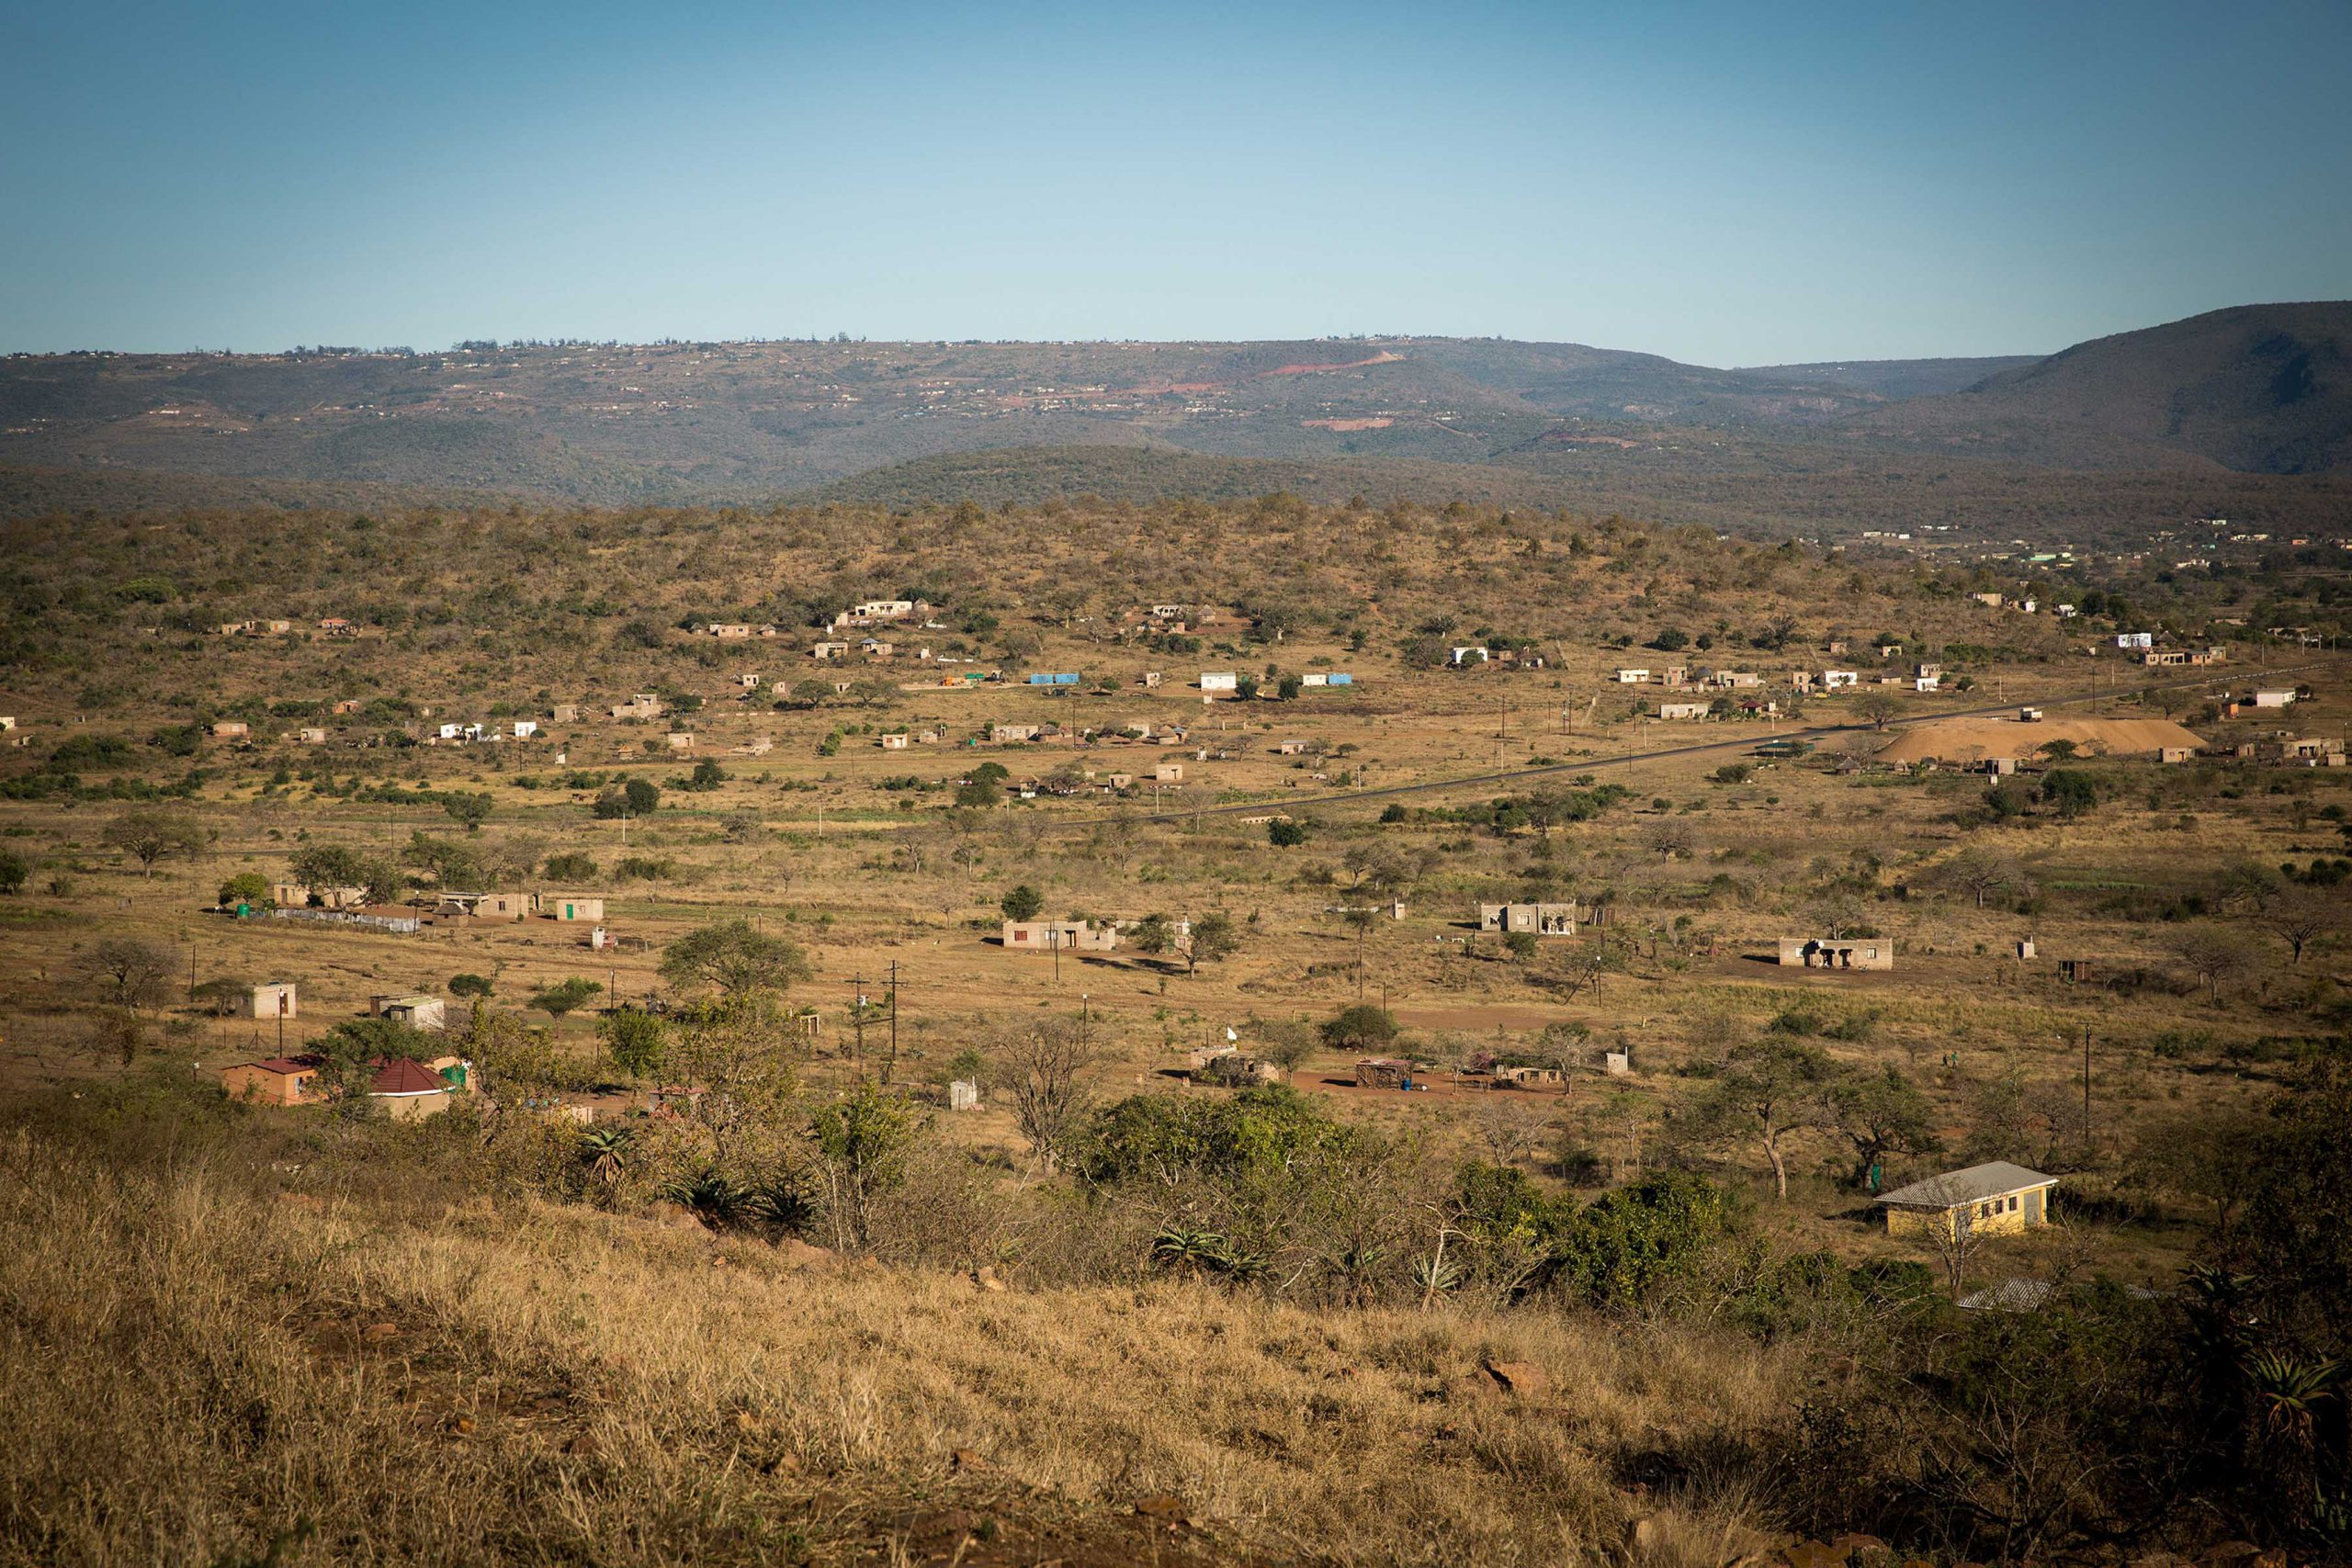 27 November 2018: The road from Manguzi to Ingwavuma cuts into a hillside and offers expansive views of the sandveld below. Three young herders who lived in the area found Clare Stewart's body on 24 November 1993.